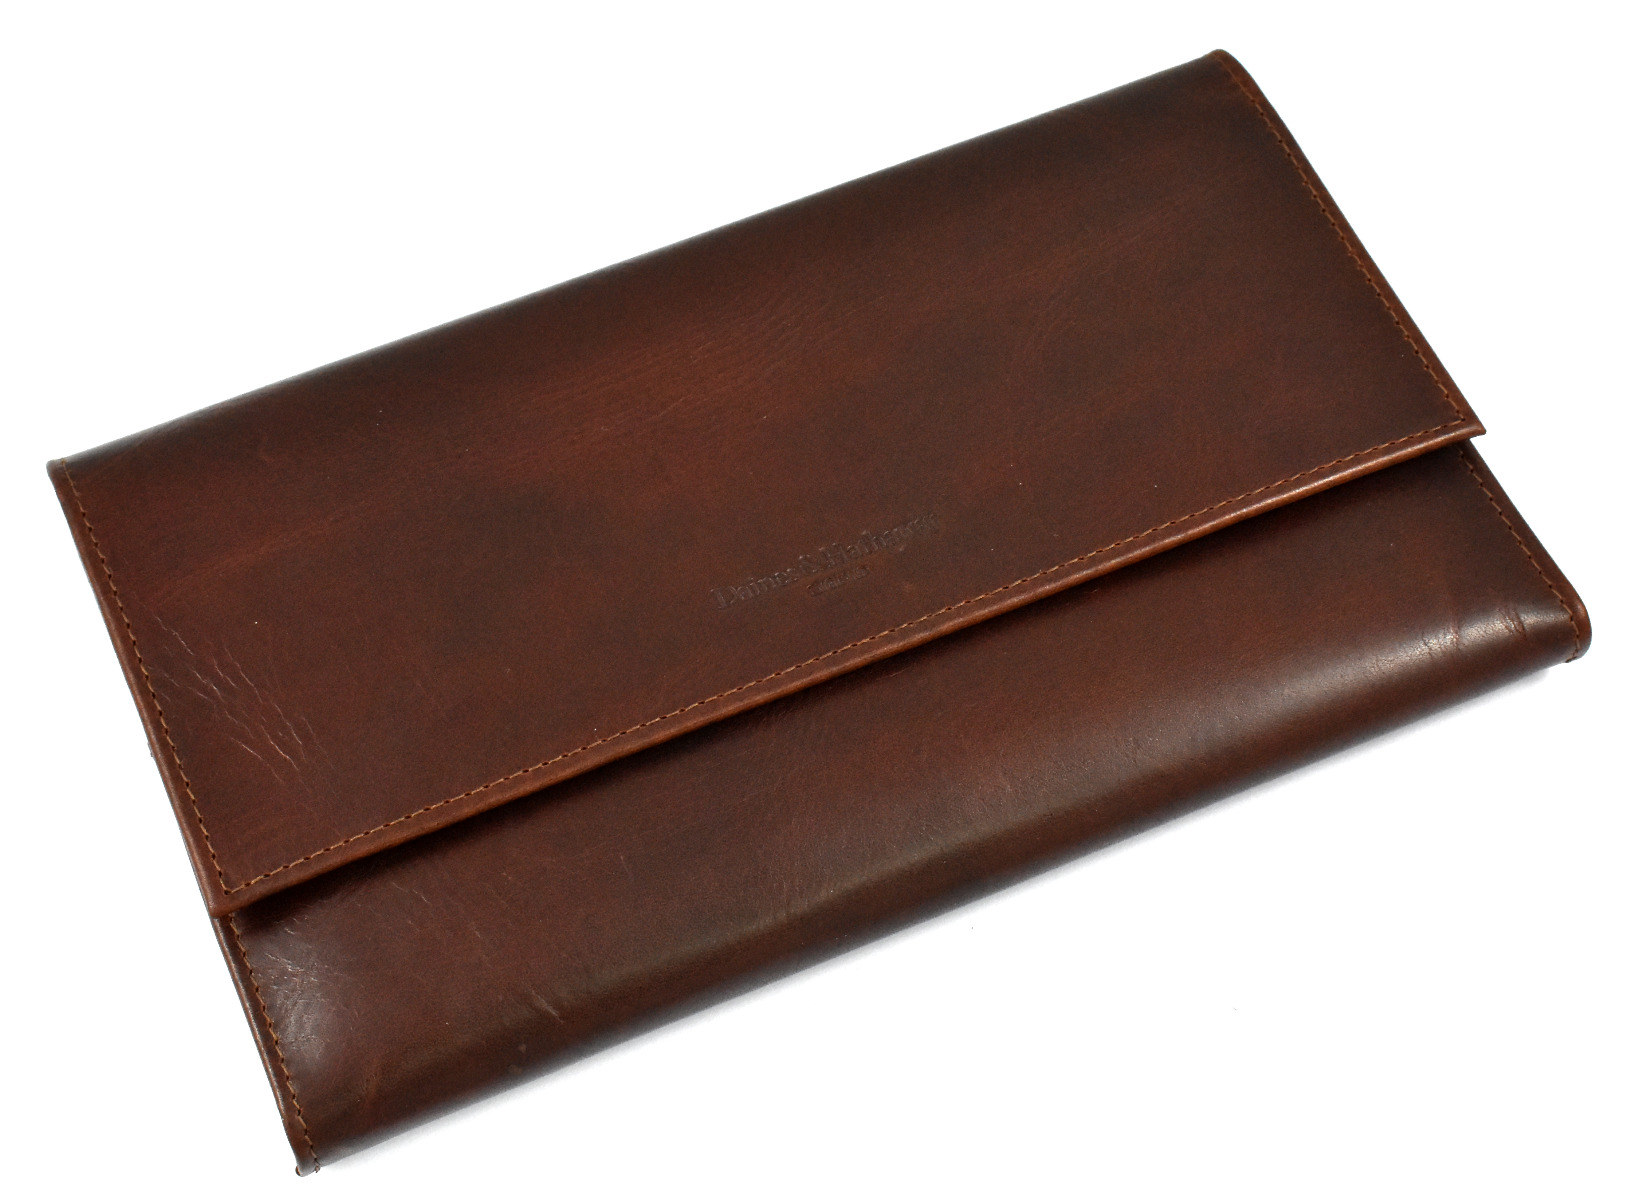 Daines and Hathaway Brooklyn Chestnut Brown Leather Travel Wallet